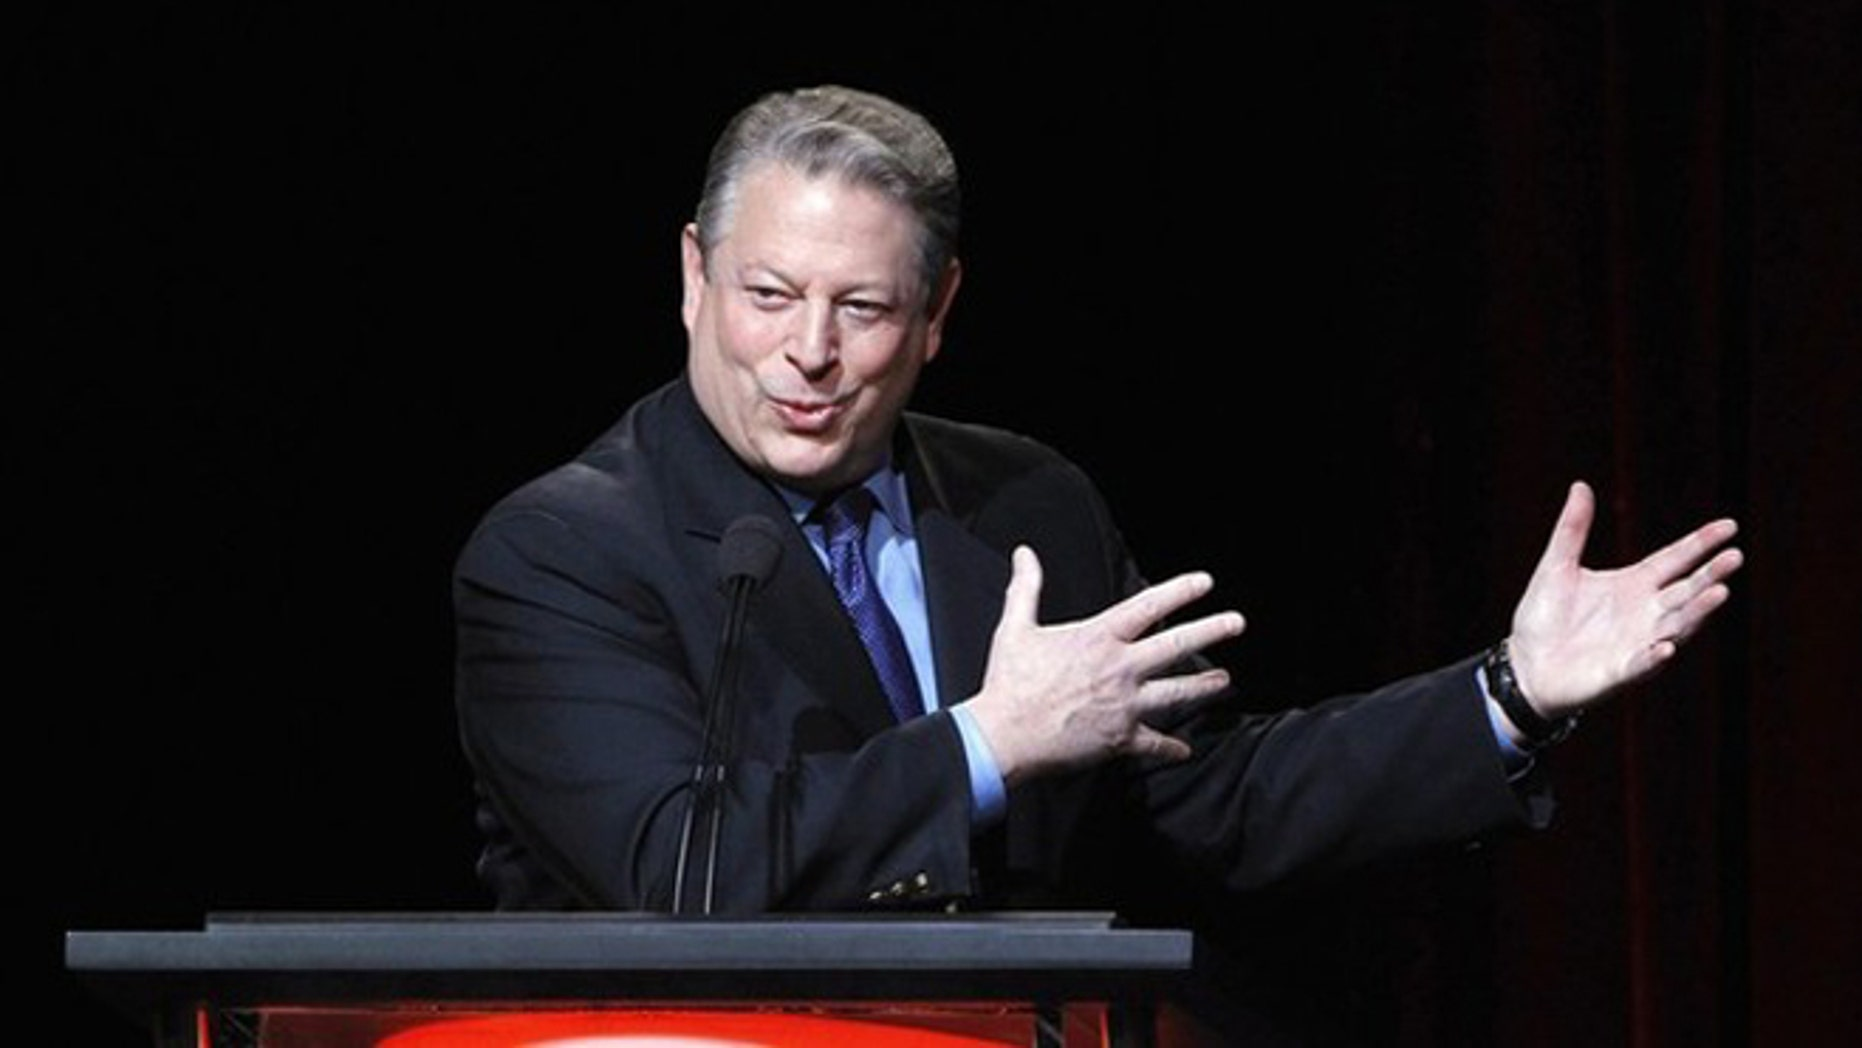 """Jan. 13, 2012: Former U.S. Vice President and Current TV Chairman and co-founder Al Gore speaks during the panel for Current TV's """"Politically Direct"""" at the Television Critics Association winter press tour in Pasadena, California."""